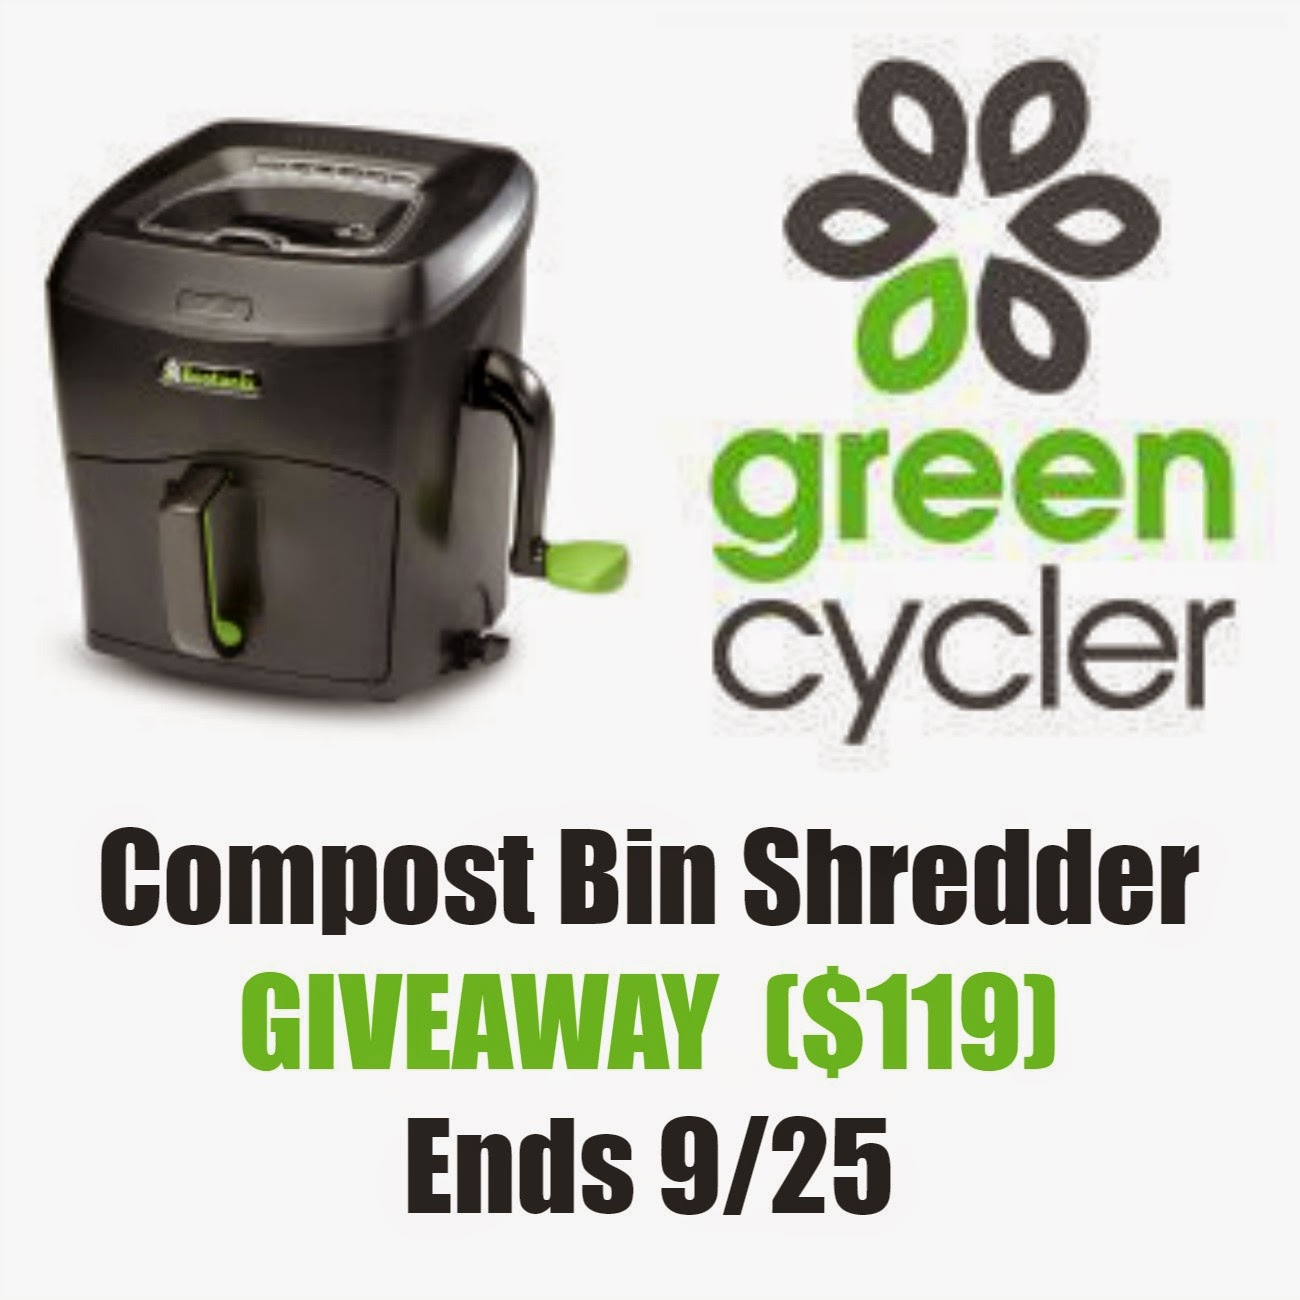 Green Cycler Compost Shredder